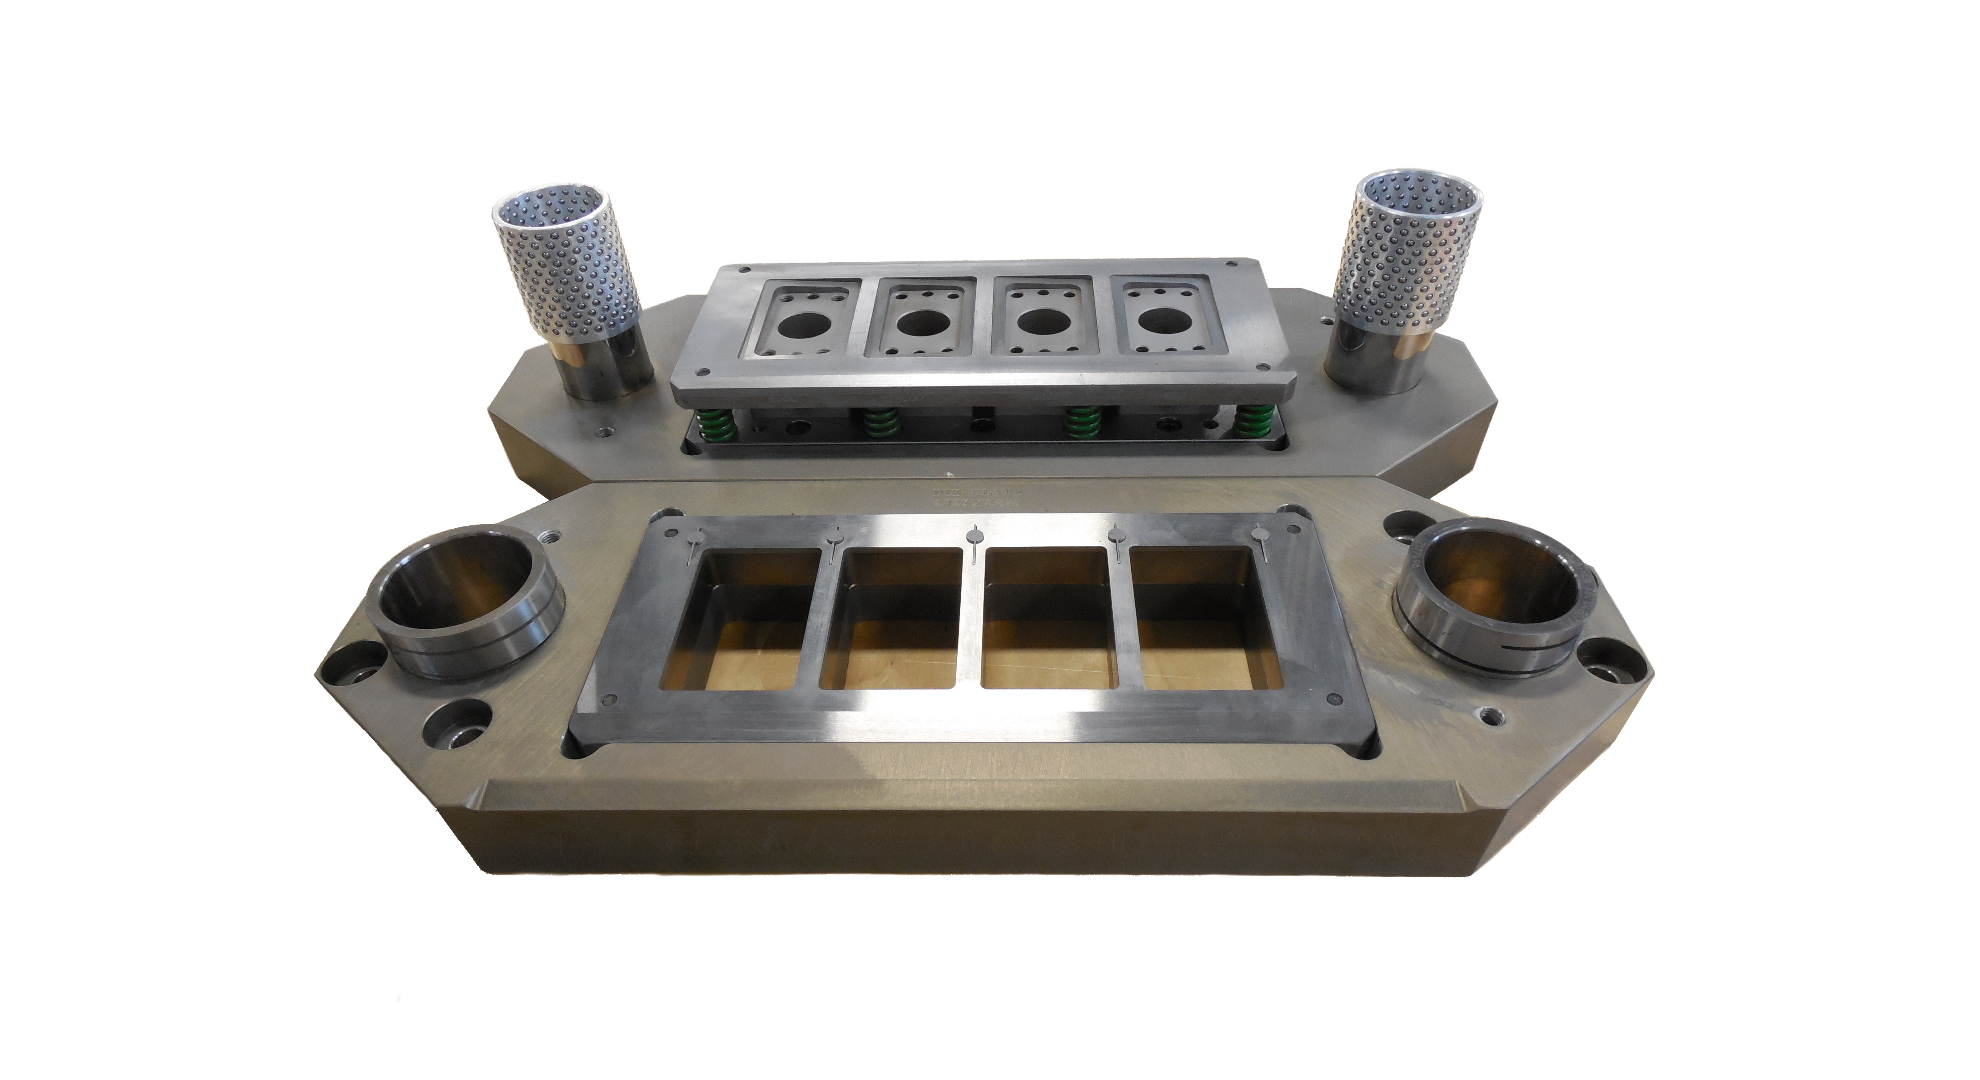 Matched Metal Tool and Precision Machining